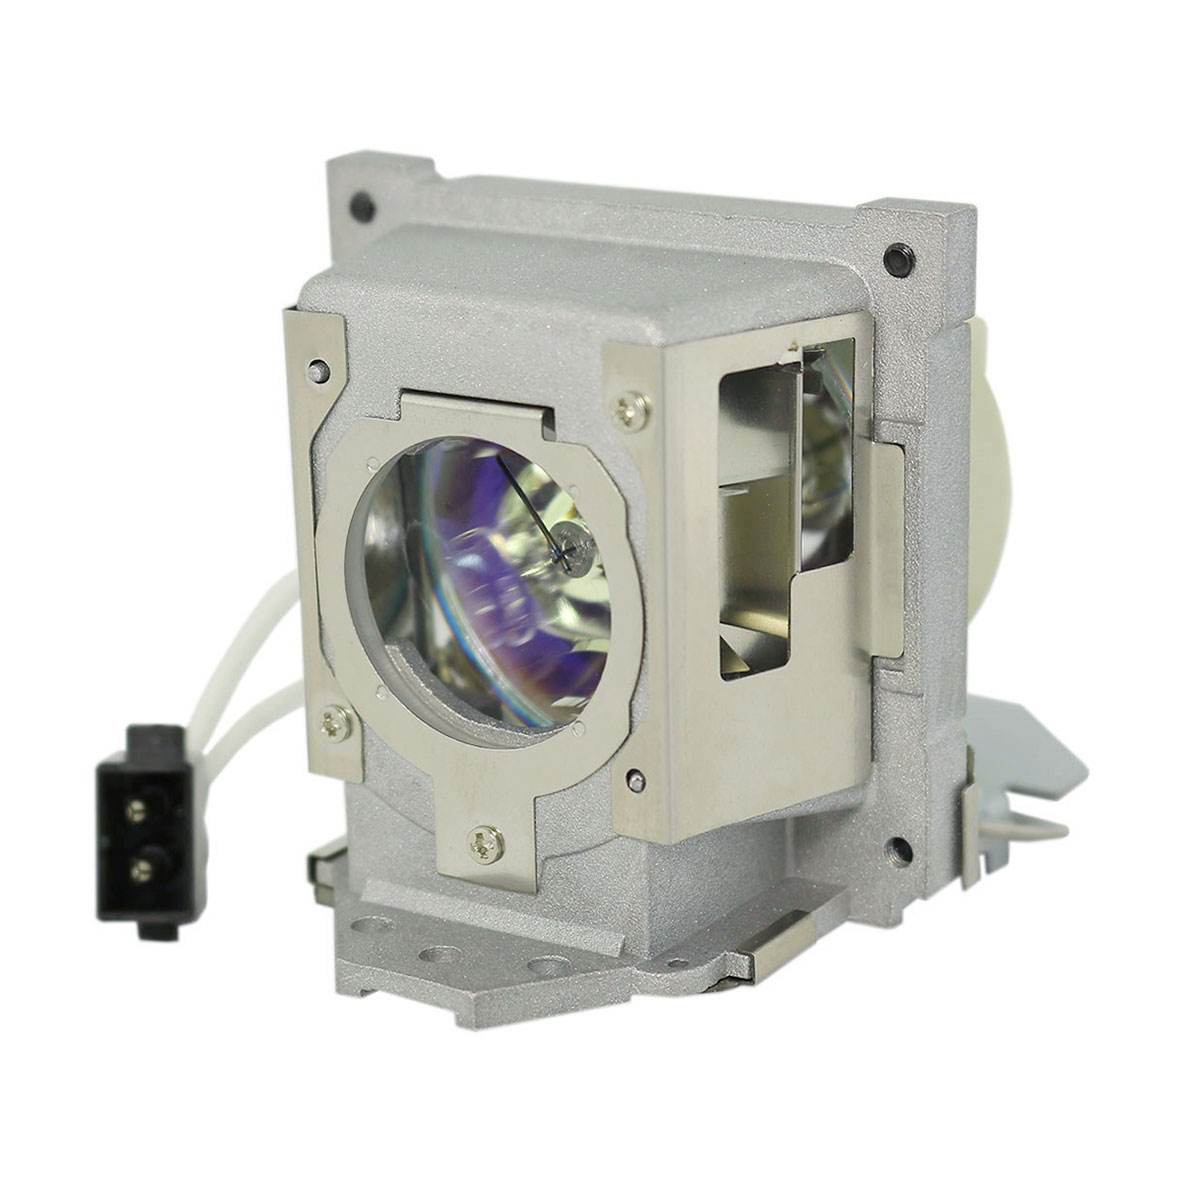 Original Philips Projector Lamp Replacement with Housing for BenQ TP4940 - image 5 of 5